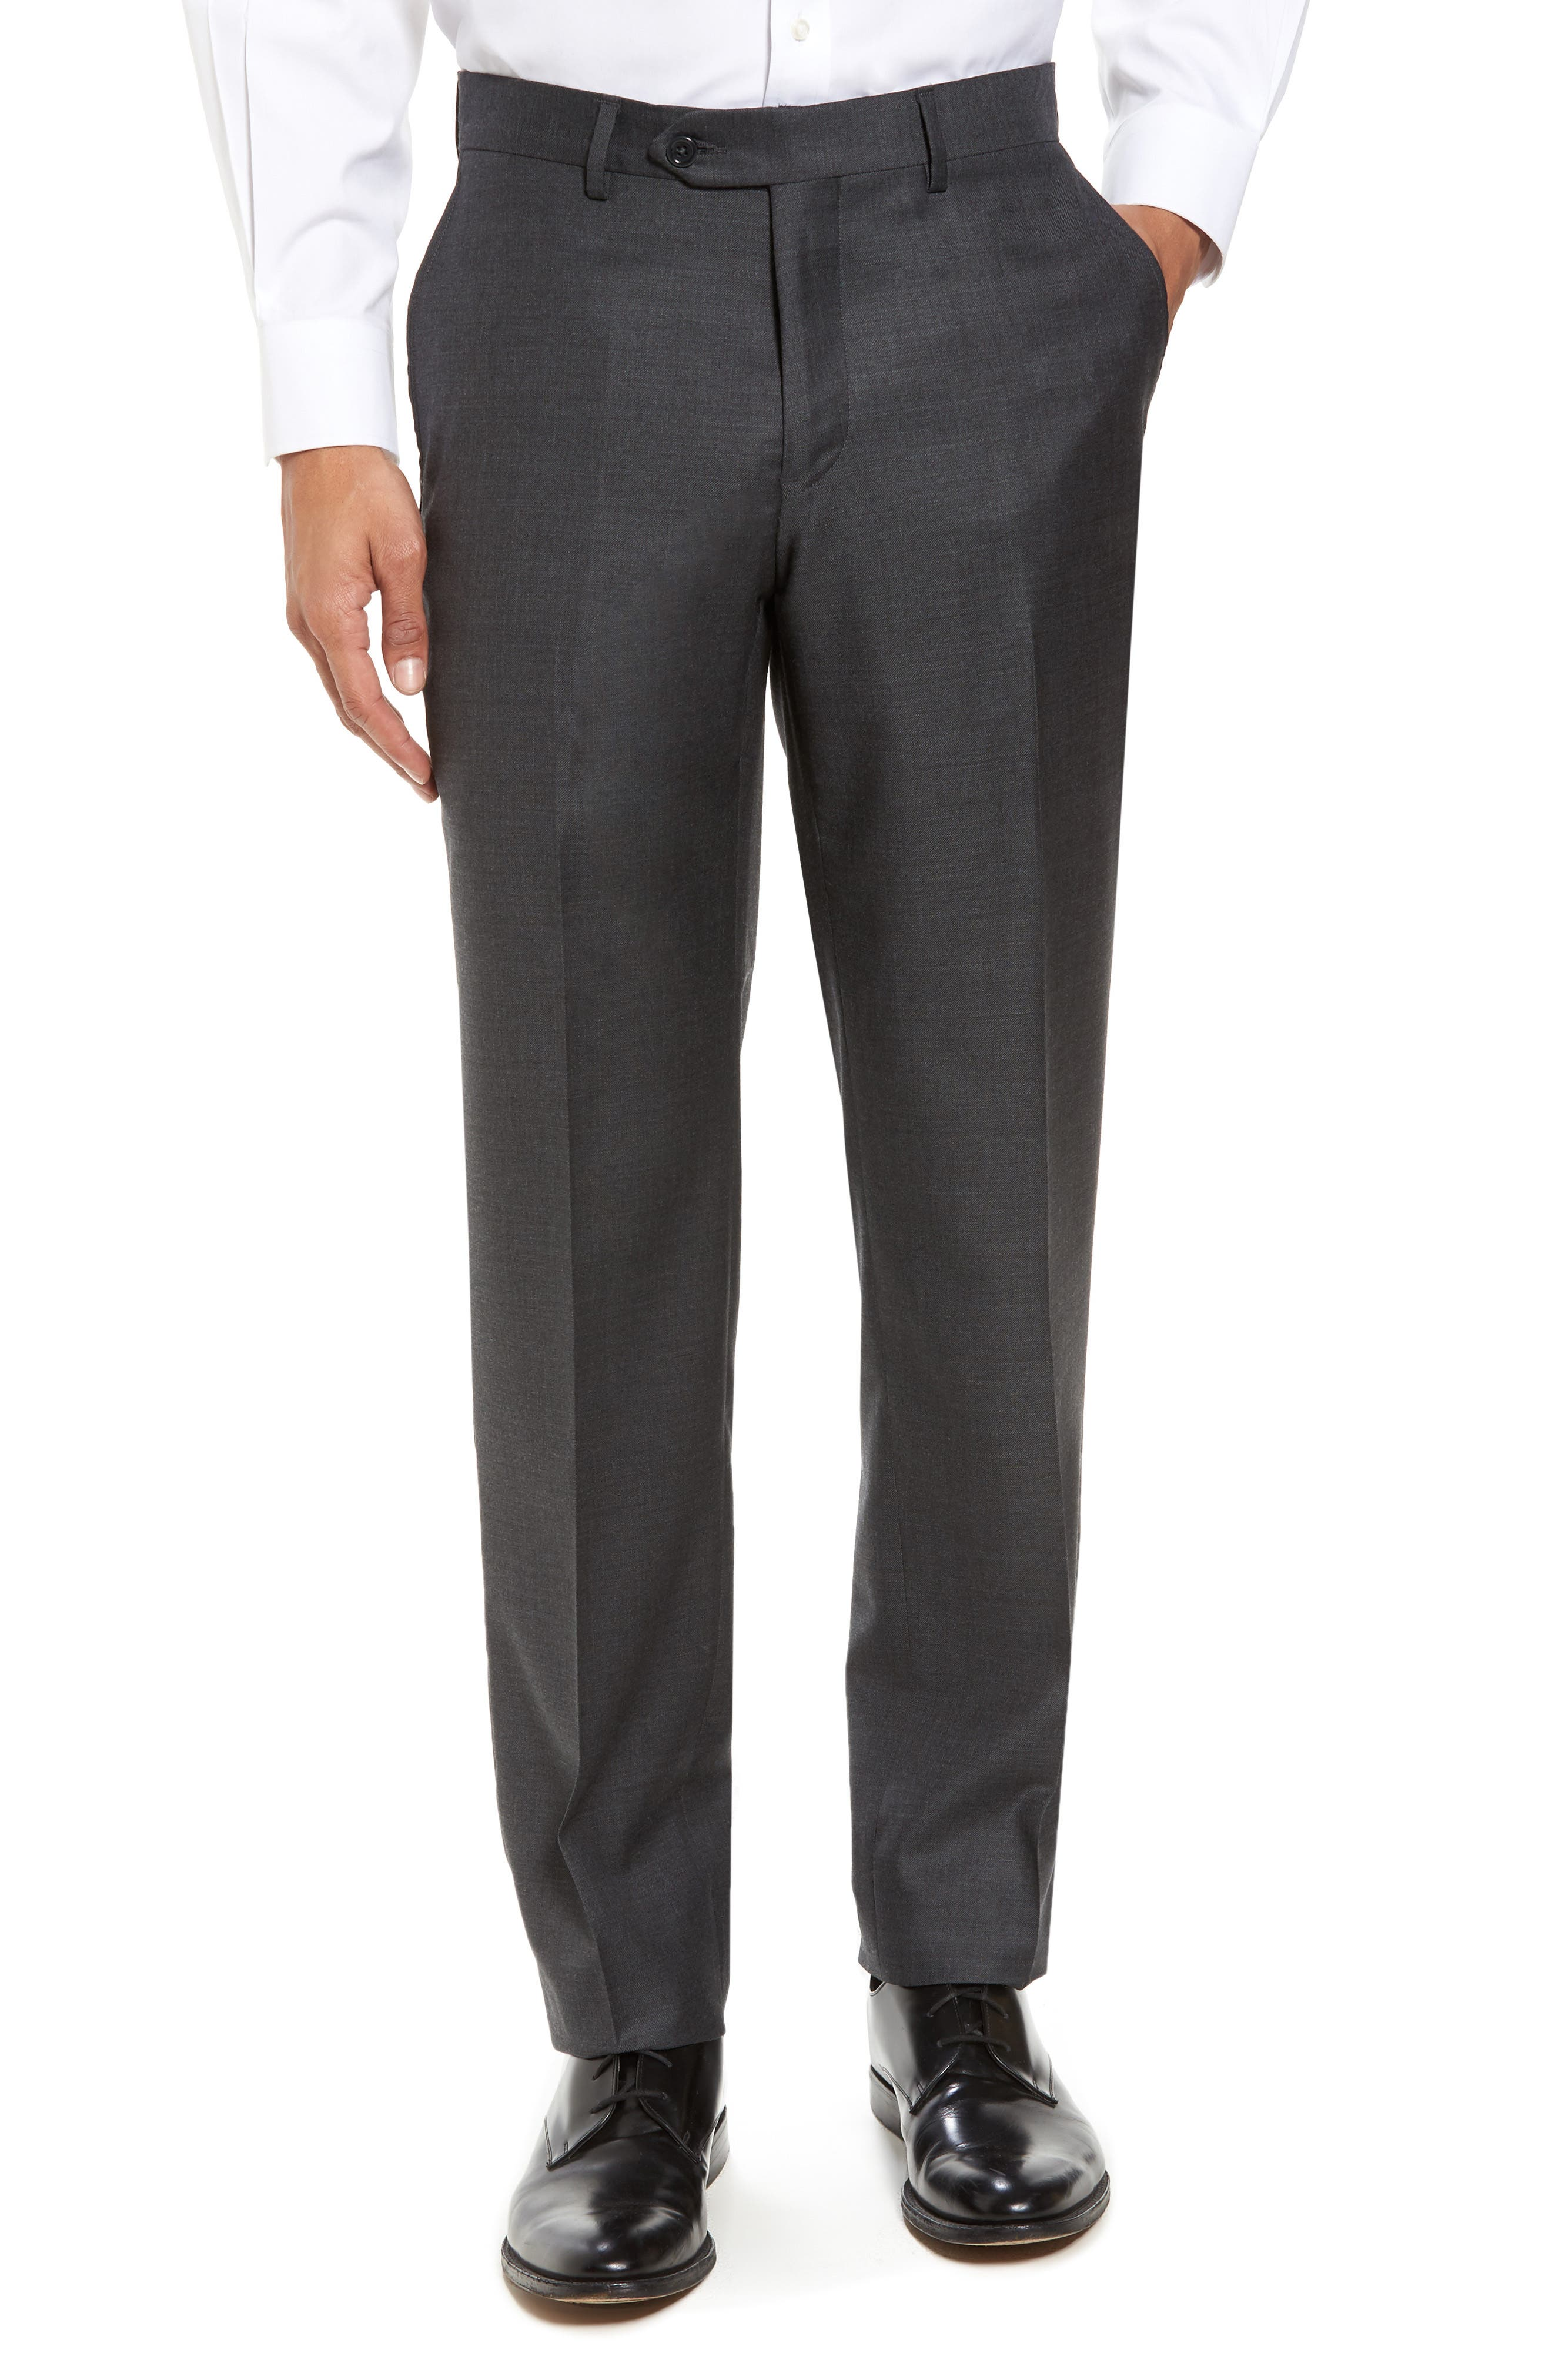 Flat Front Sharkskin Wool Trousers,                             Main thumbnail 1, color,                             025